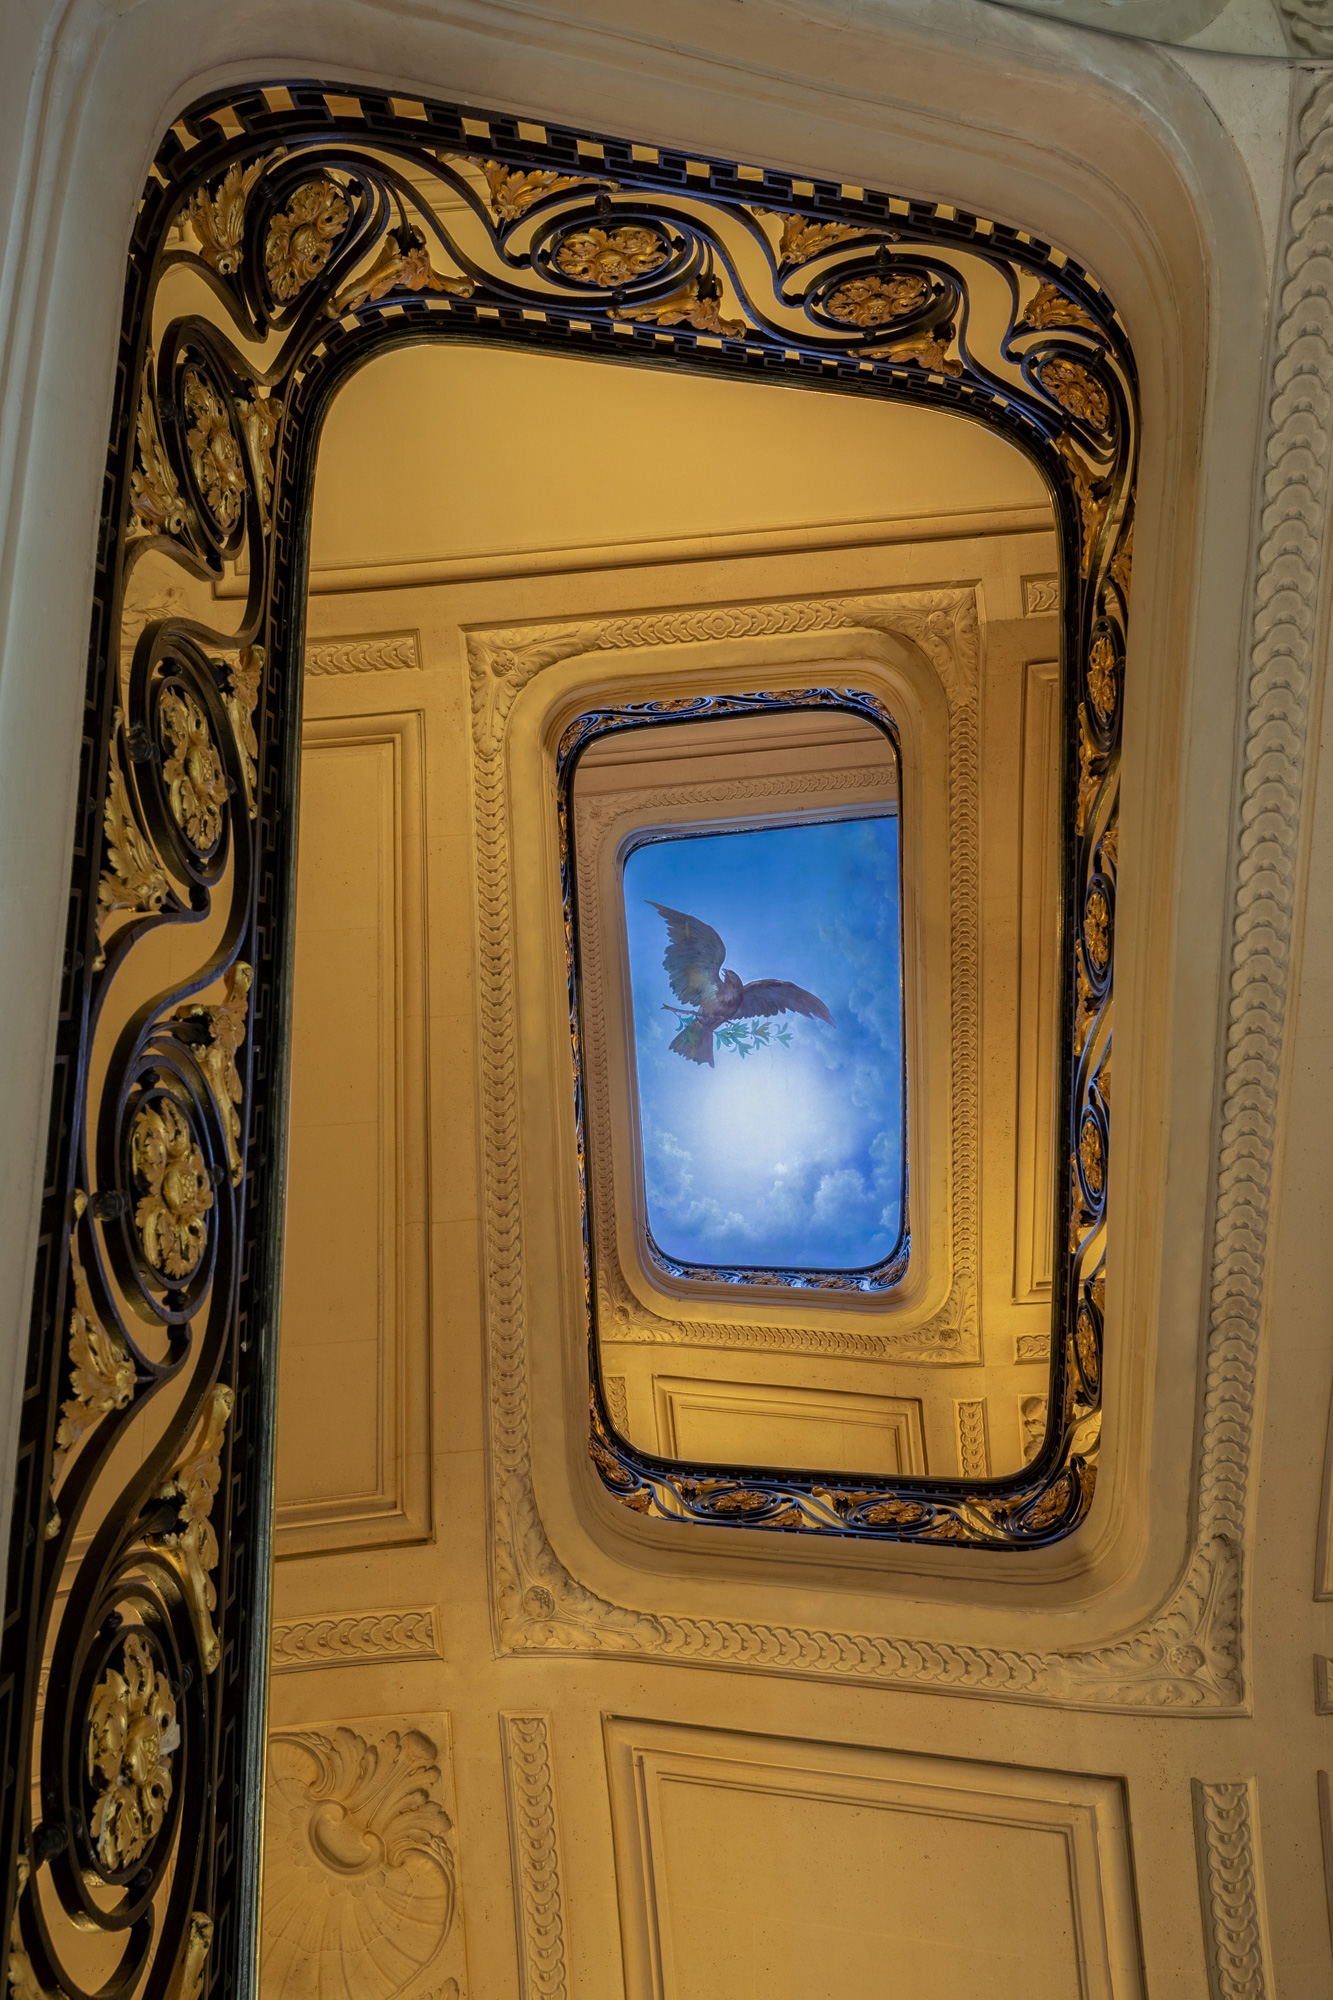 hotel staircase: view up the stairs on the eagle drawn on the ceiling